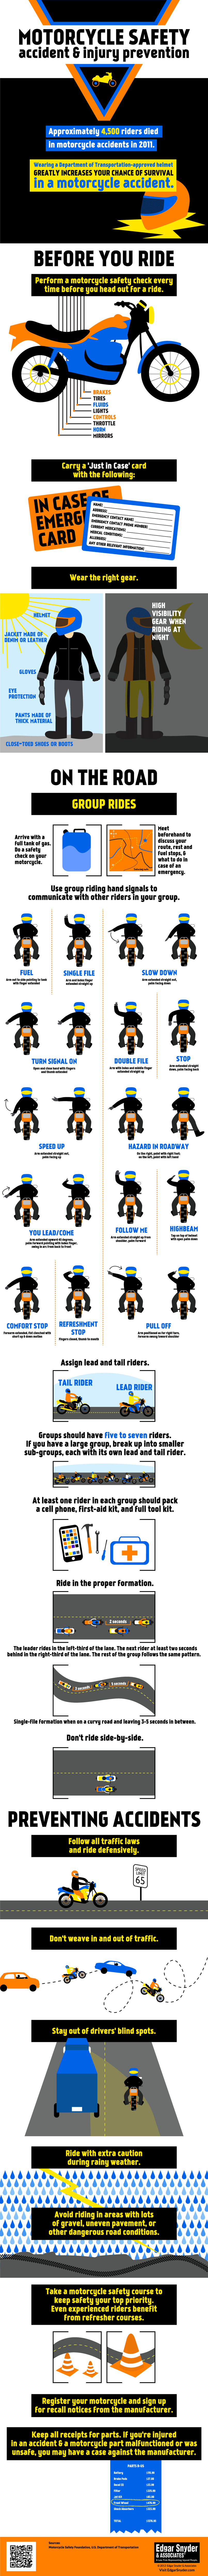 Motorcycle Injury Prevention - Infographic